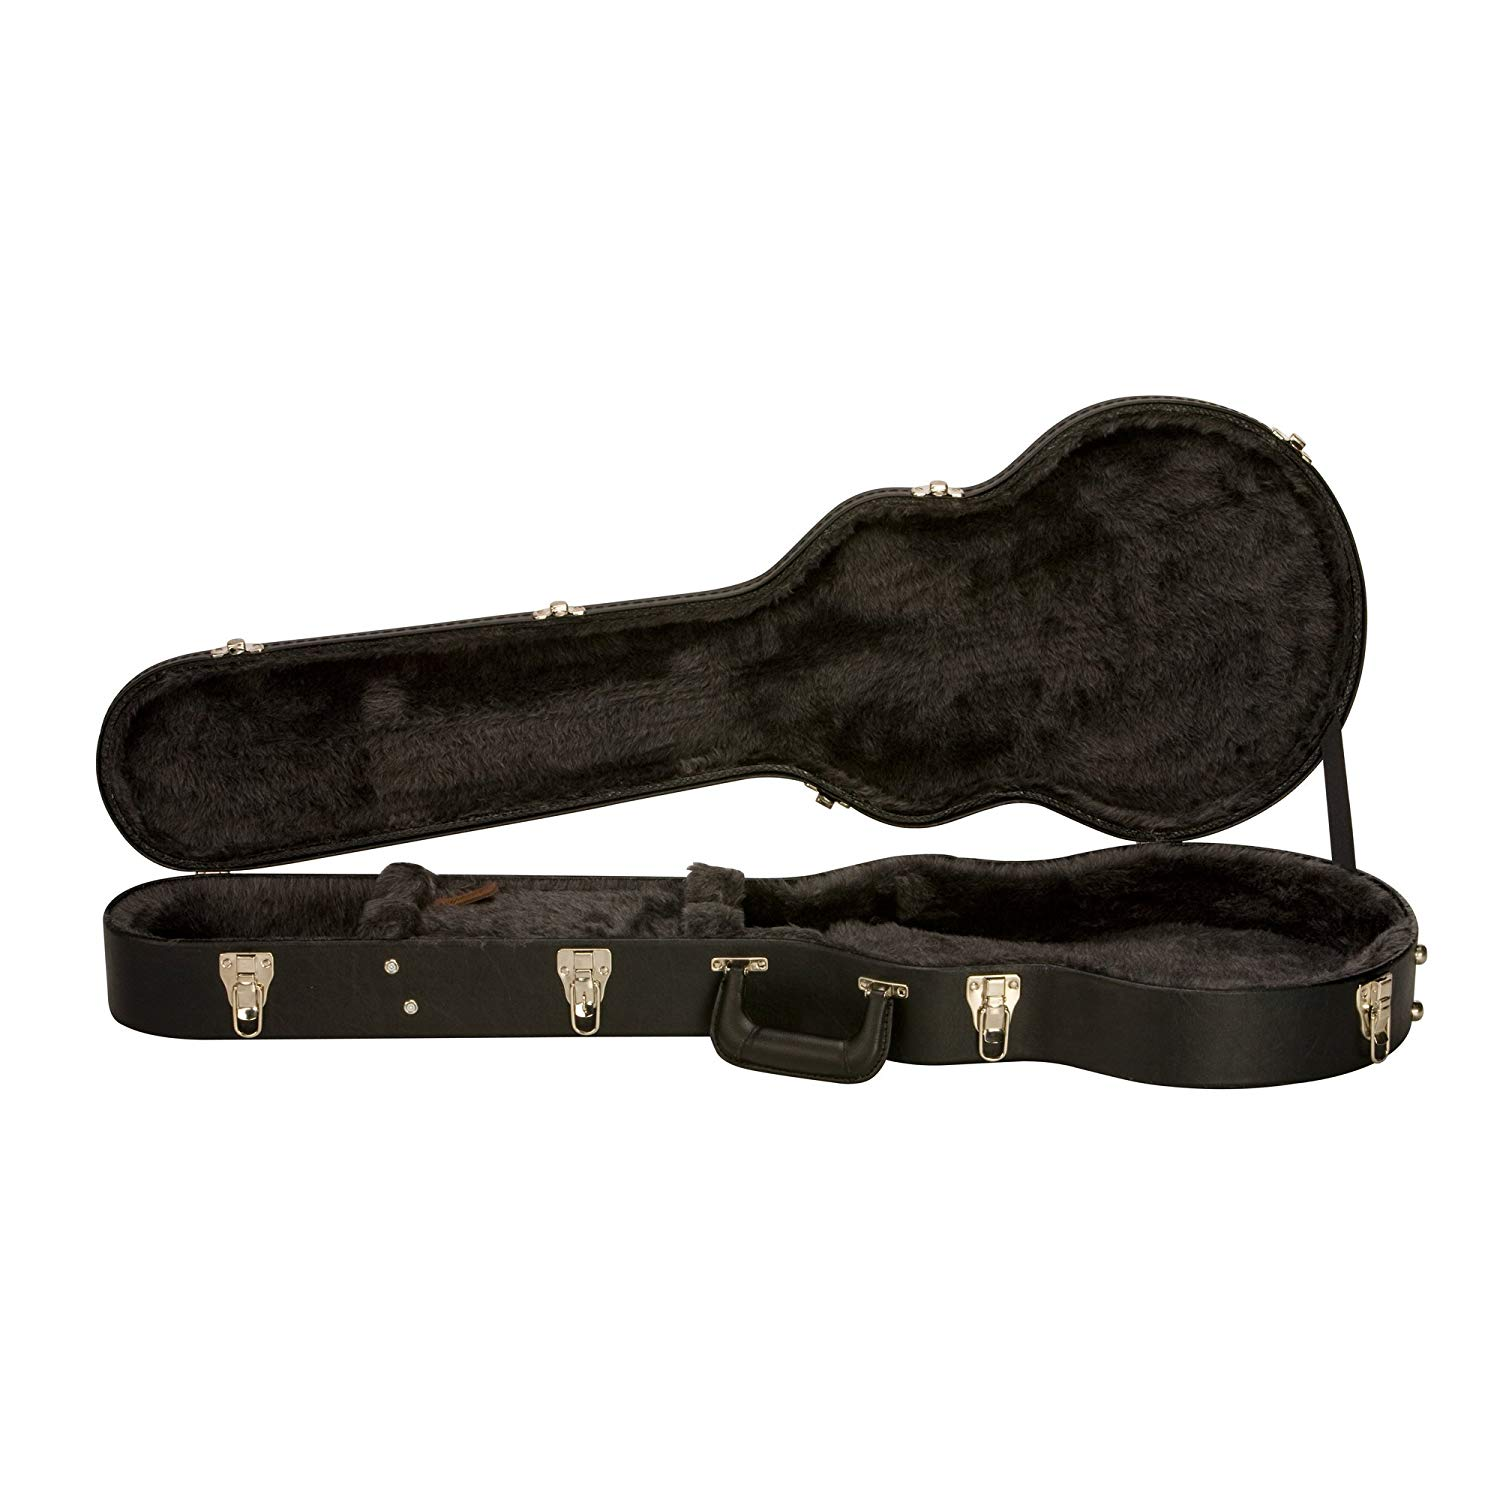 gibson les paul hardshell guitar case solo guitars. Black Bedroom Furniture Sets. Home Design Ideas